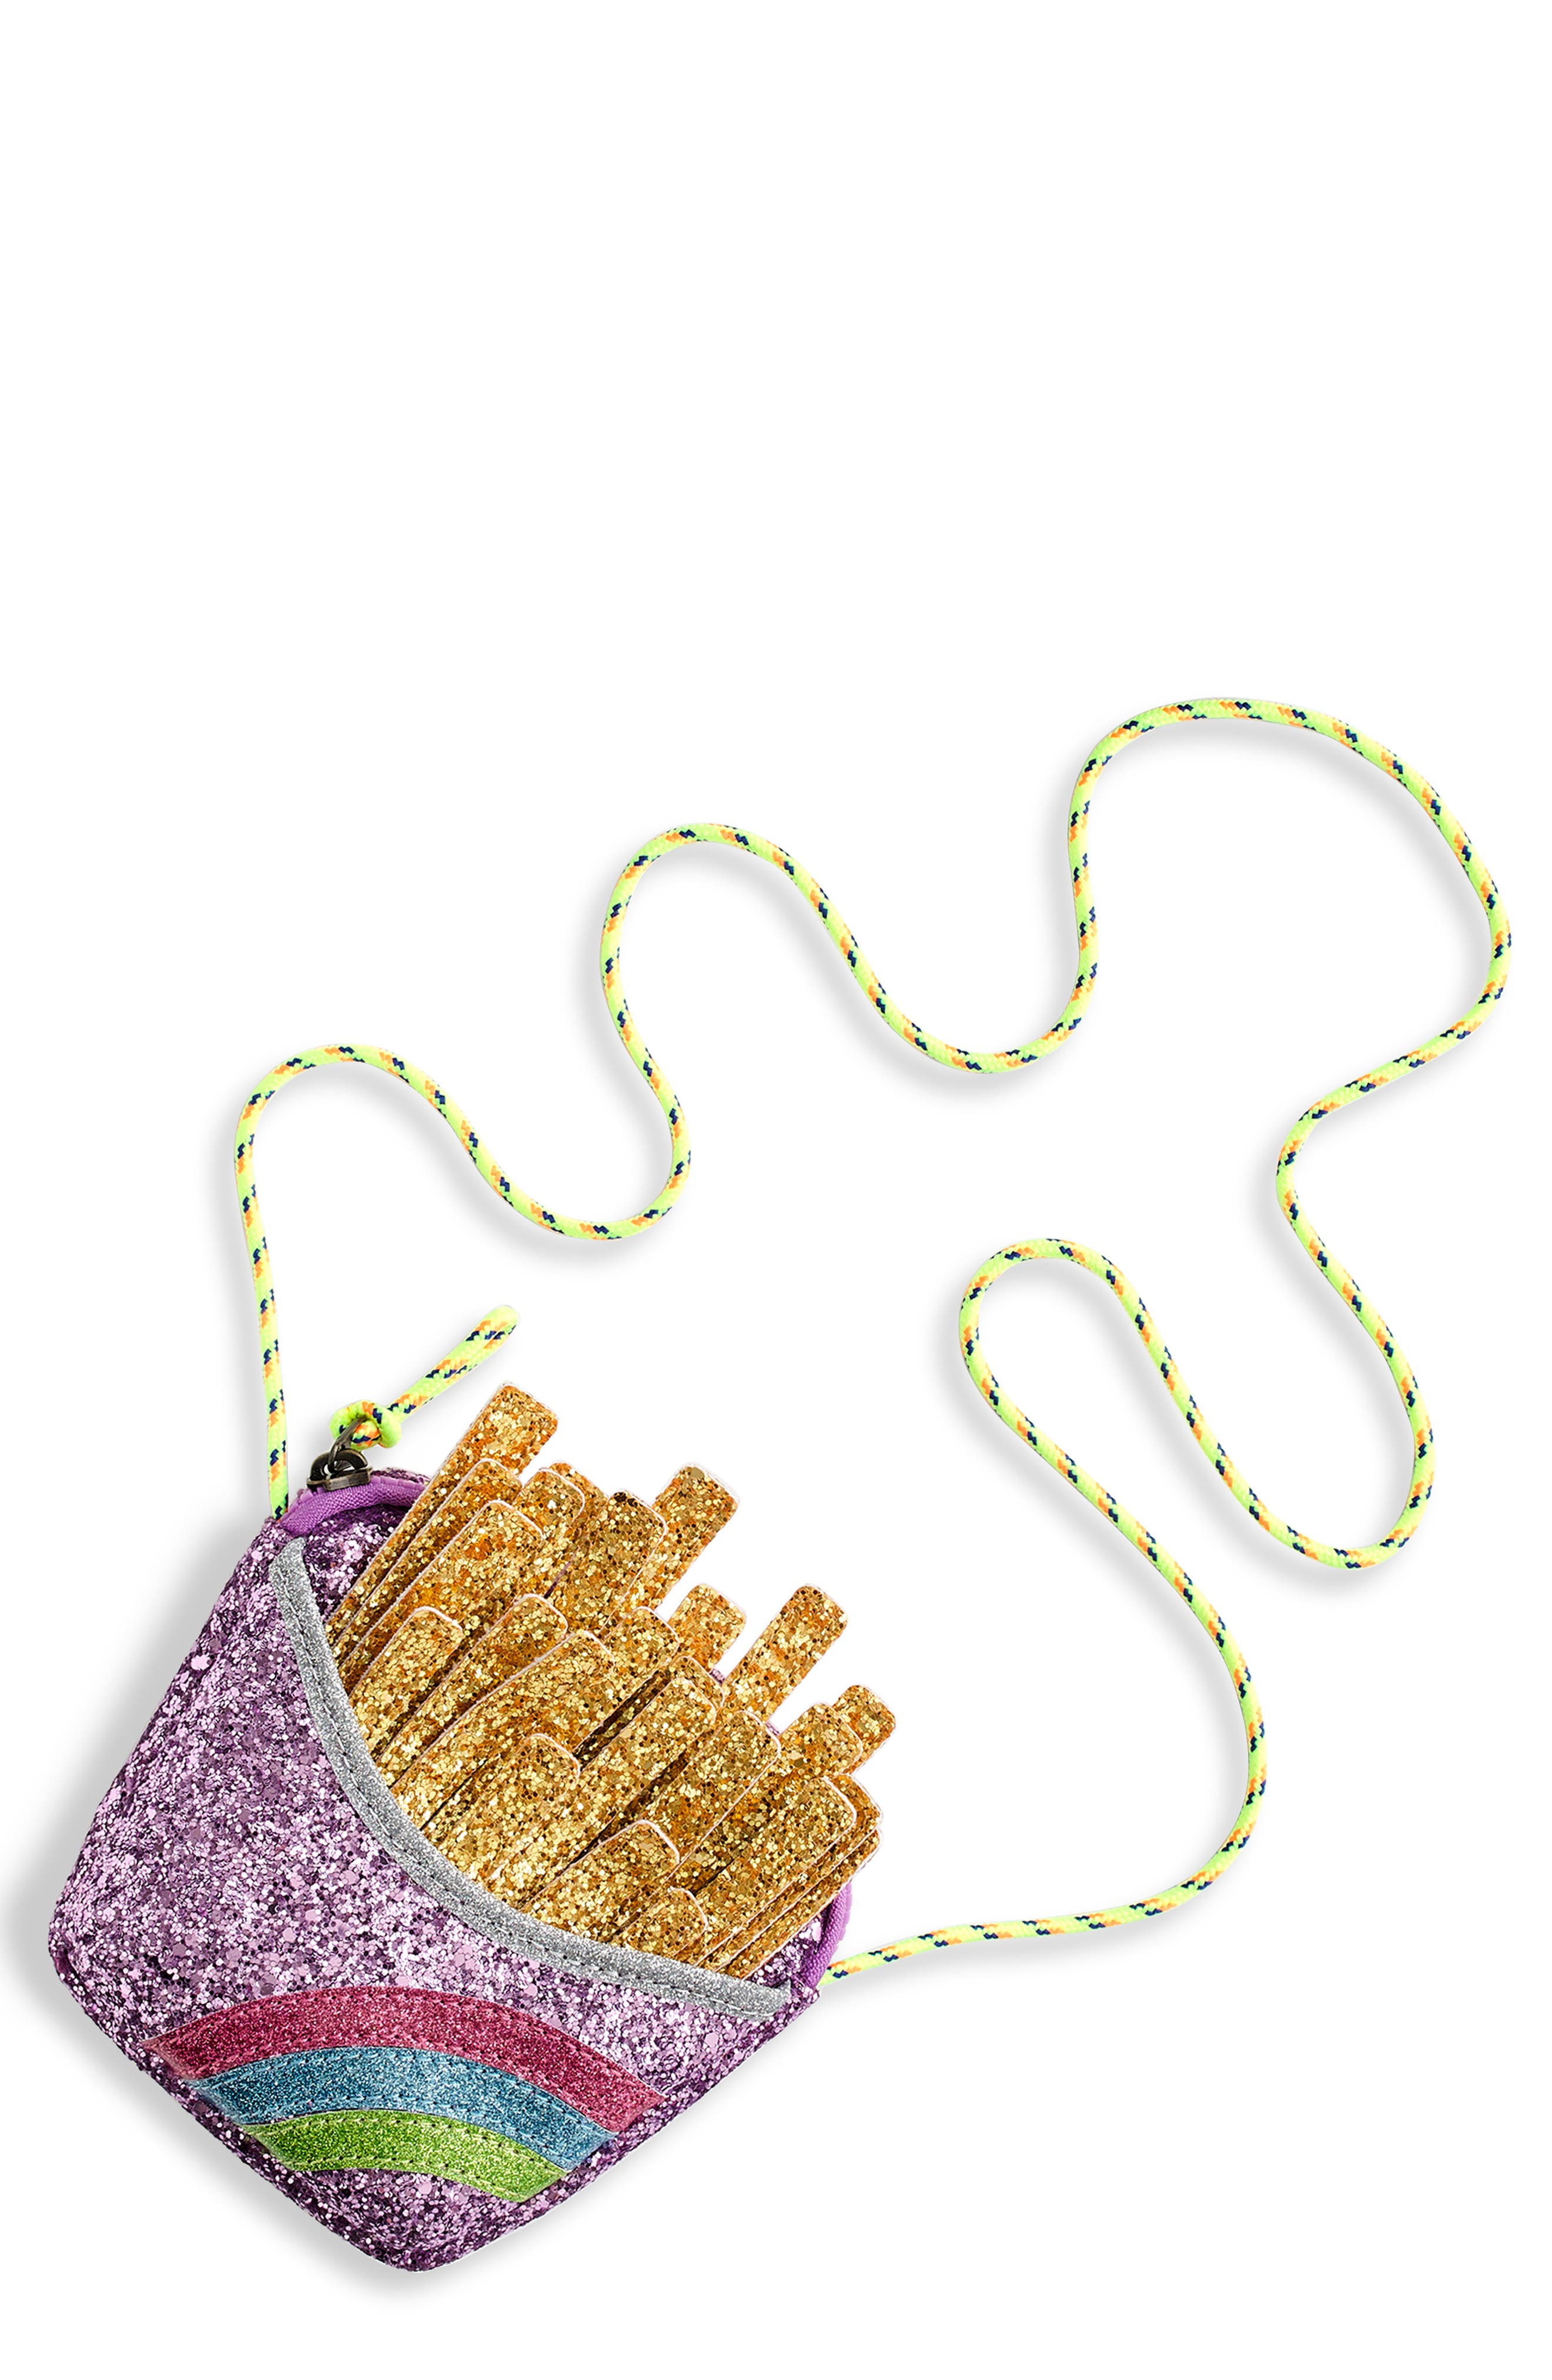 CREWCUTS BY J.CREW French Fries Bag, Main, color, RAINBOW